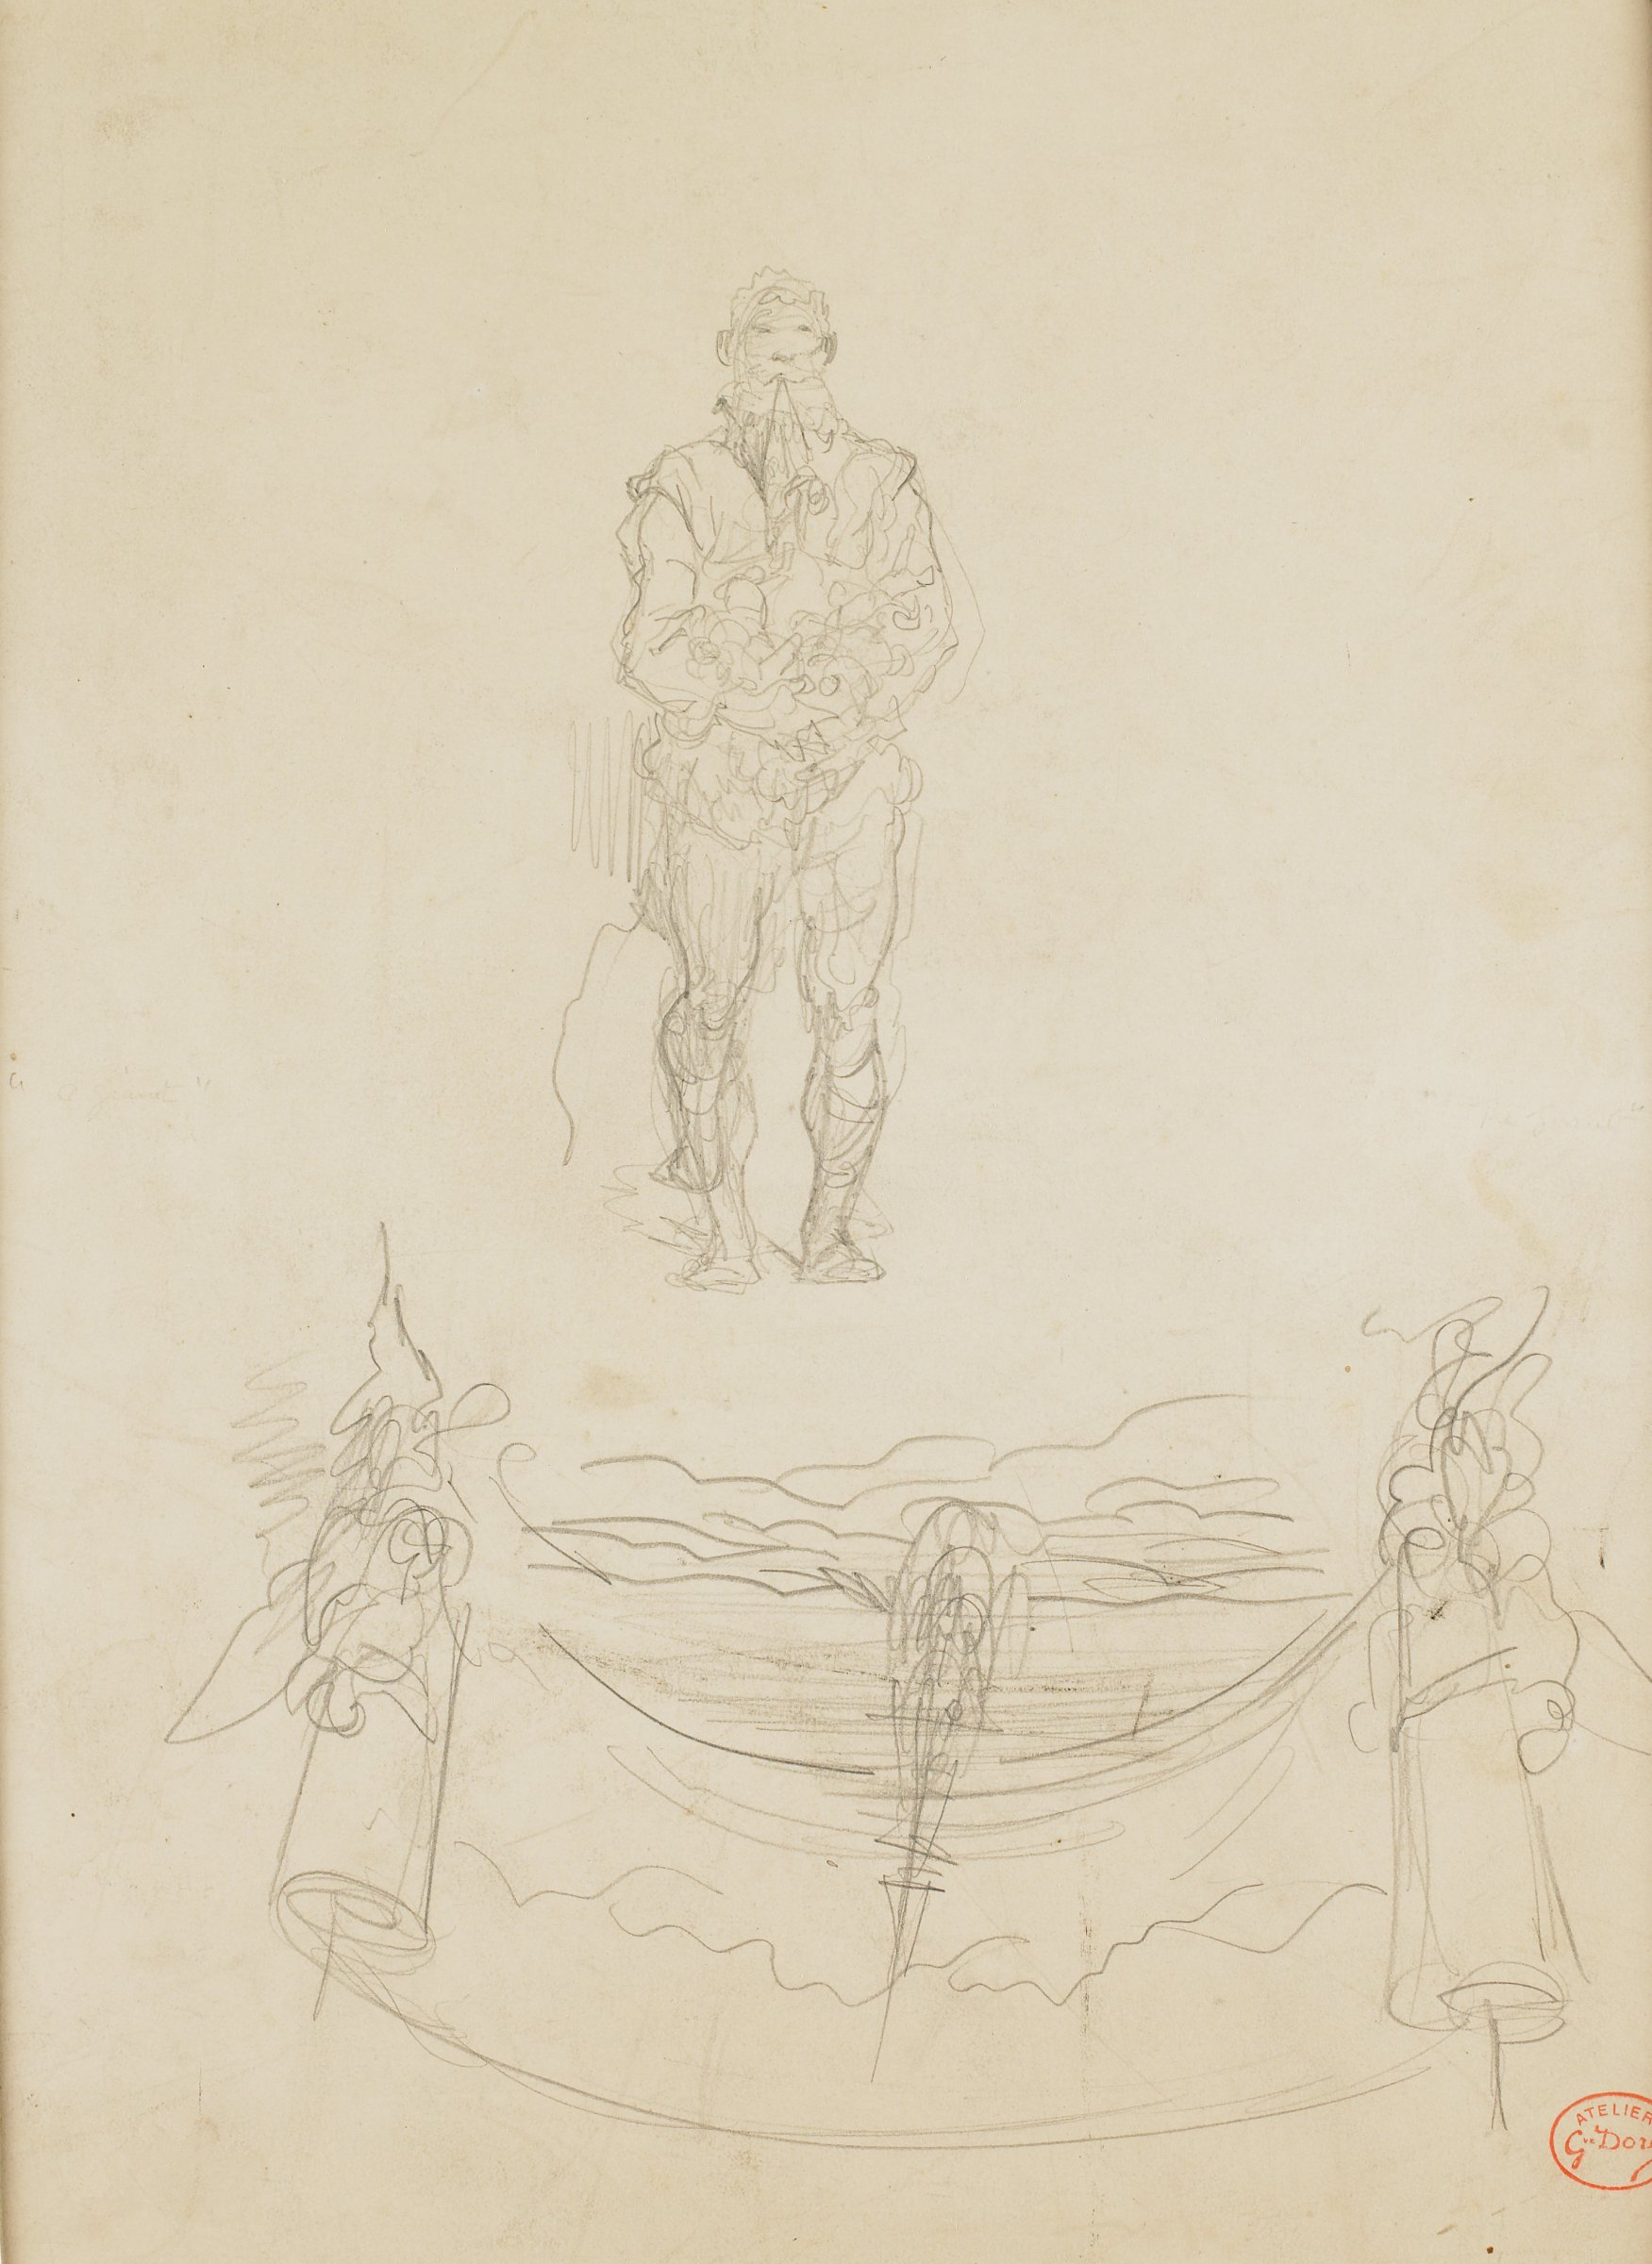 Sketch of a figure standing forward with swirls blowing from his mouth. On the lower portion is an open scroll.